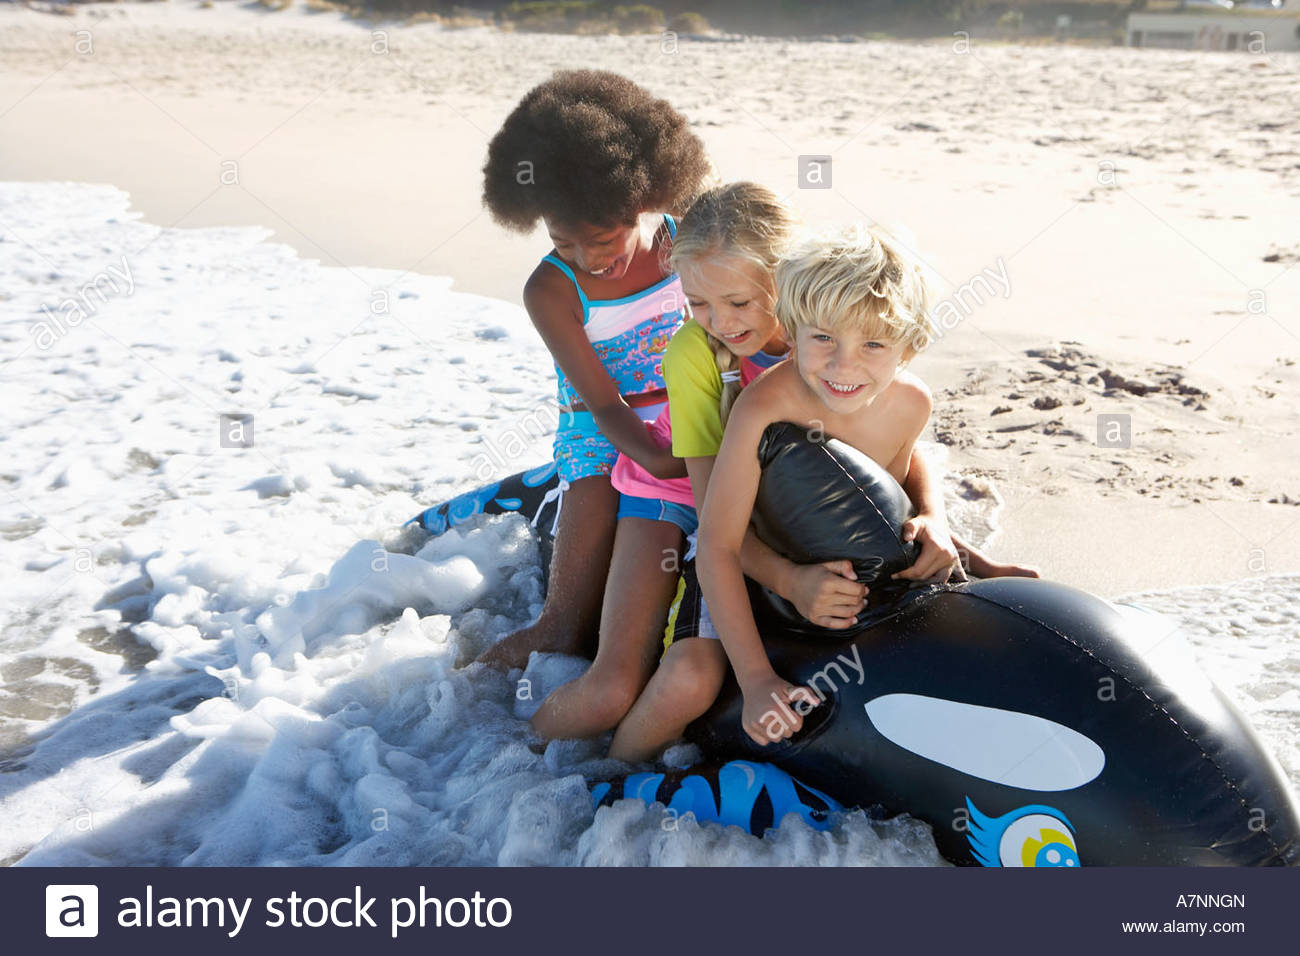 Three children 5 10 sitting on inflatable toy whale on beach playing in surf smiling - Stock Image